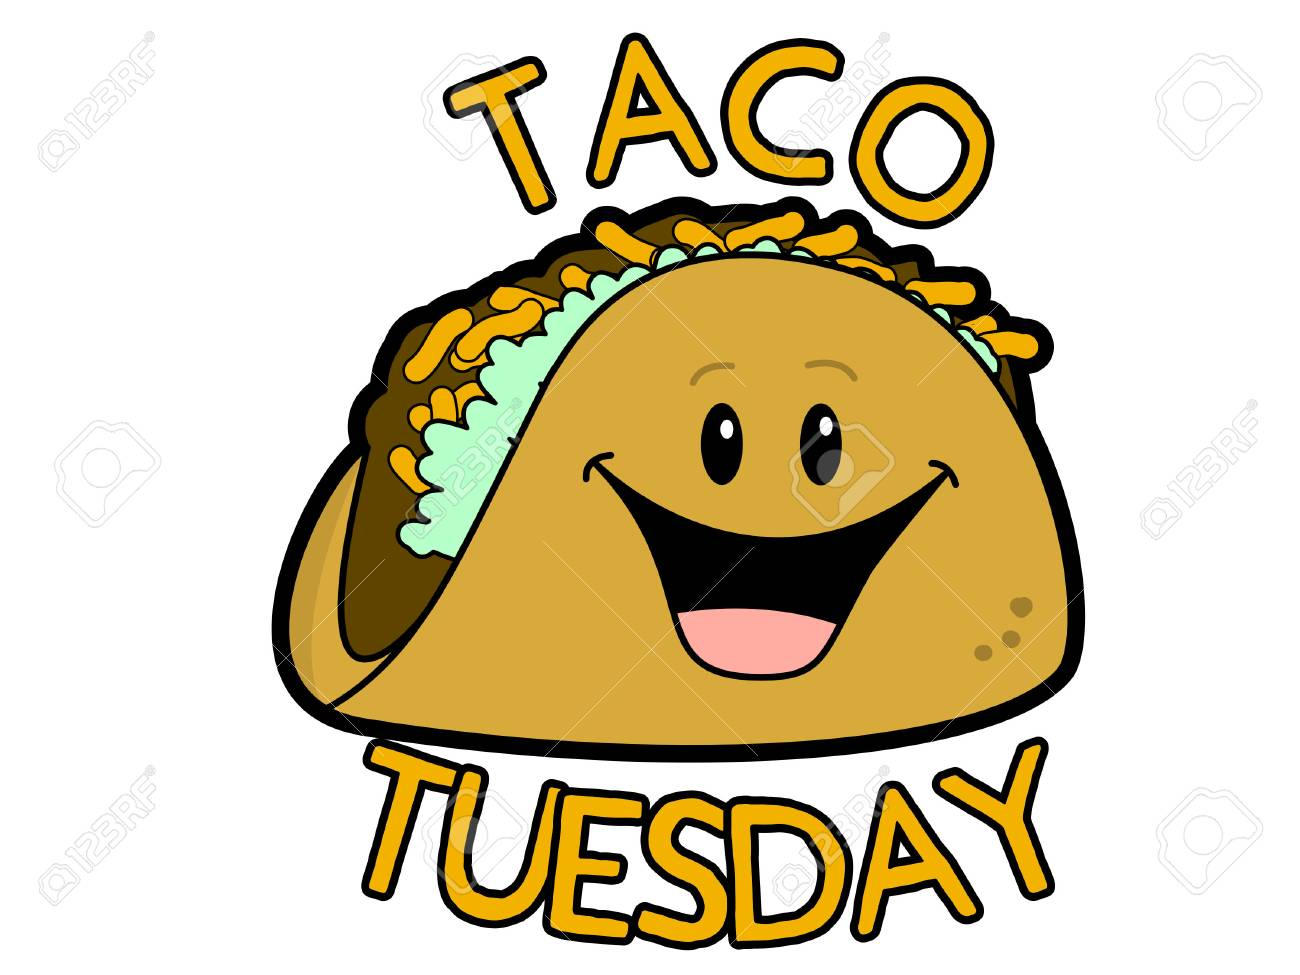 taco tuesday cartoon sign vector illustration royalty free cliparts rh 123rf com happy tuesday funny clipart happy tuesday clipart snoopy